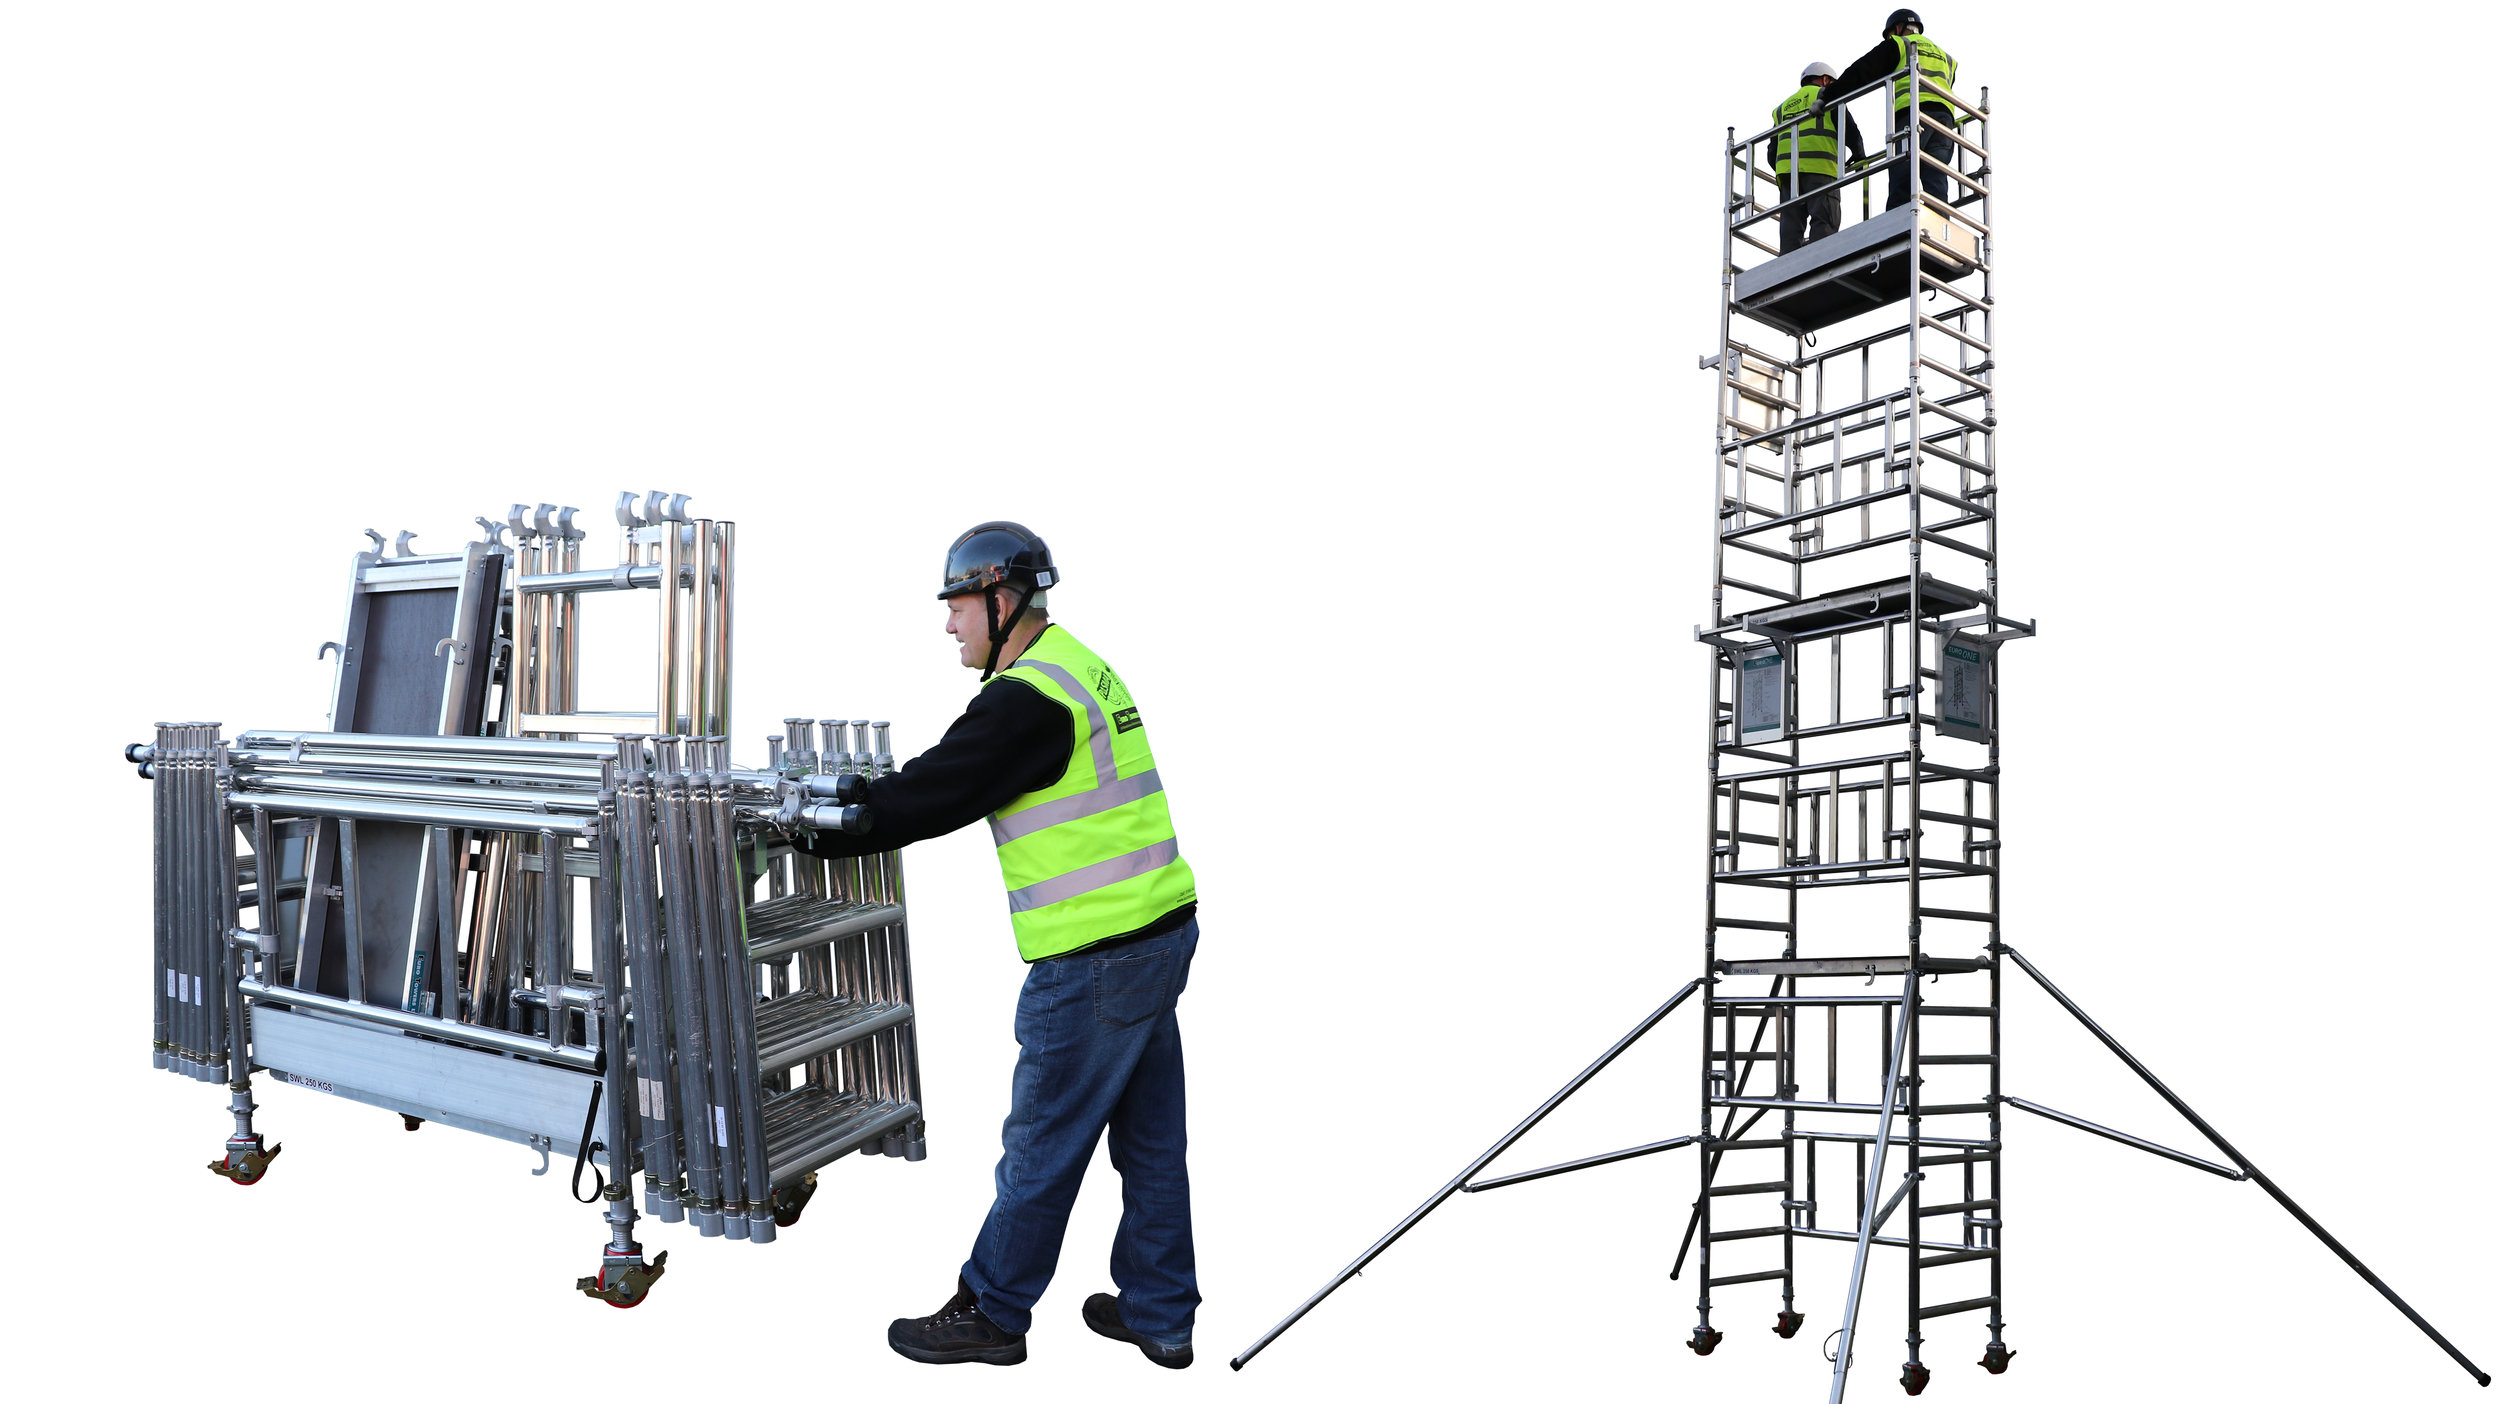 3T lADDER fRAME tOWER